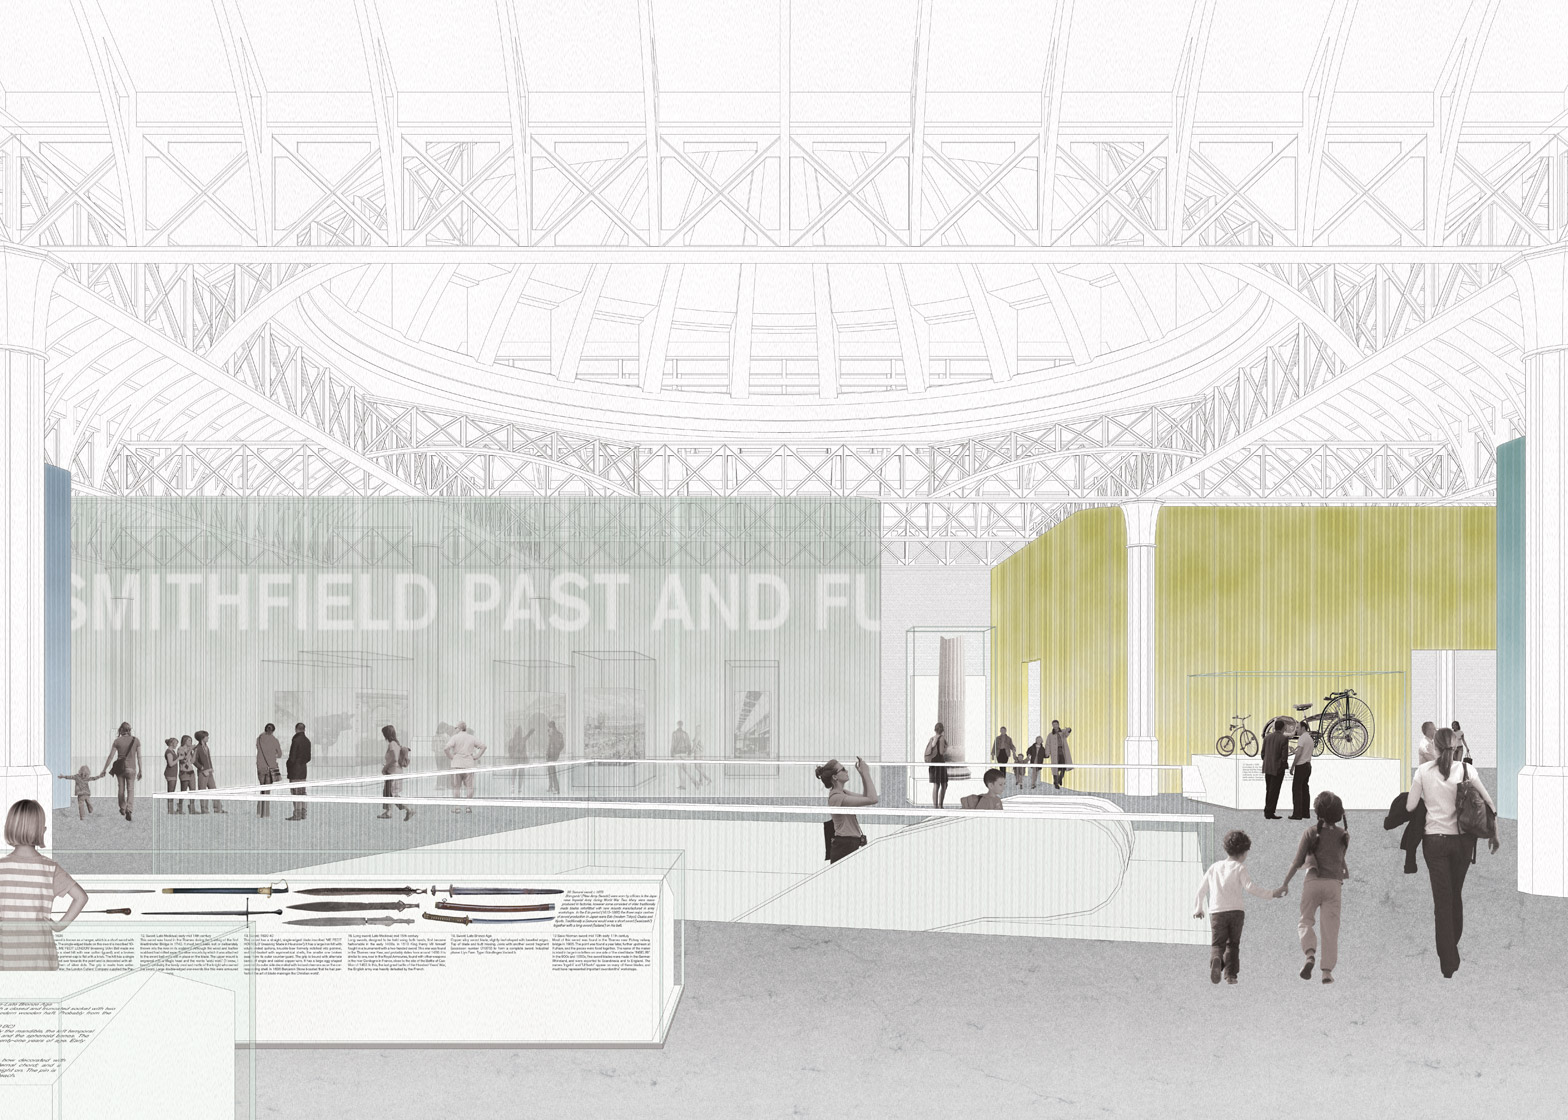 Competition entry for the new Museum of London building, UK by Caruso St John